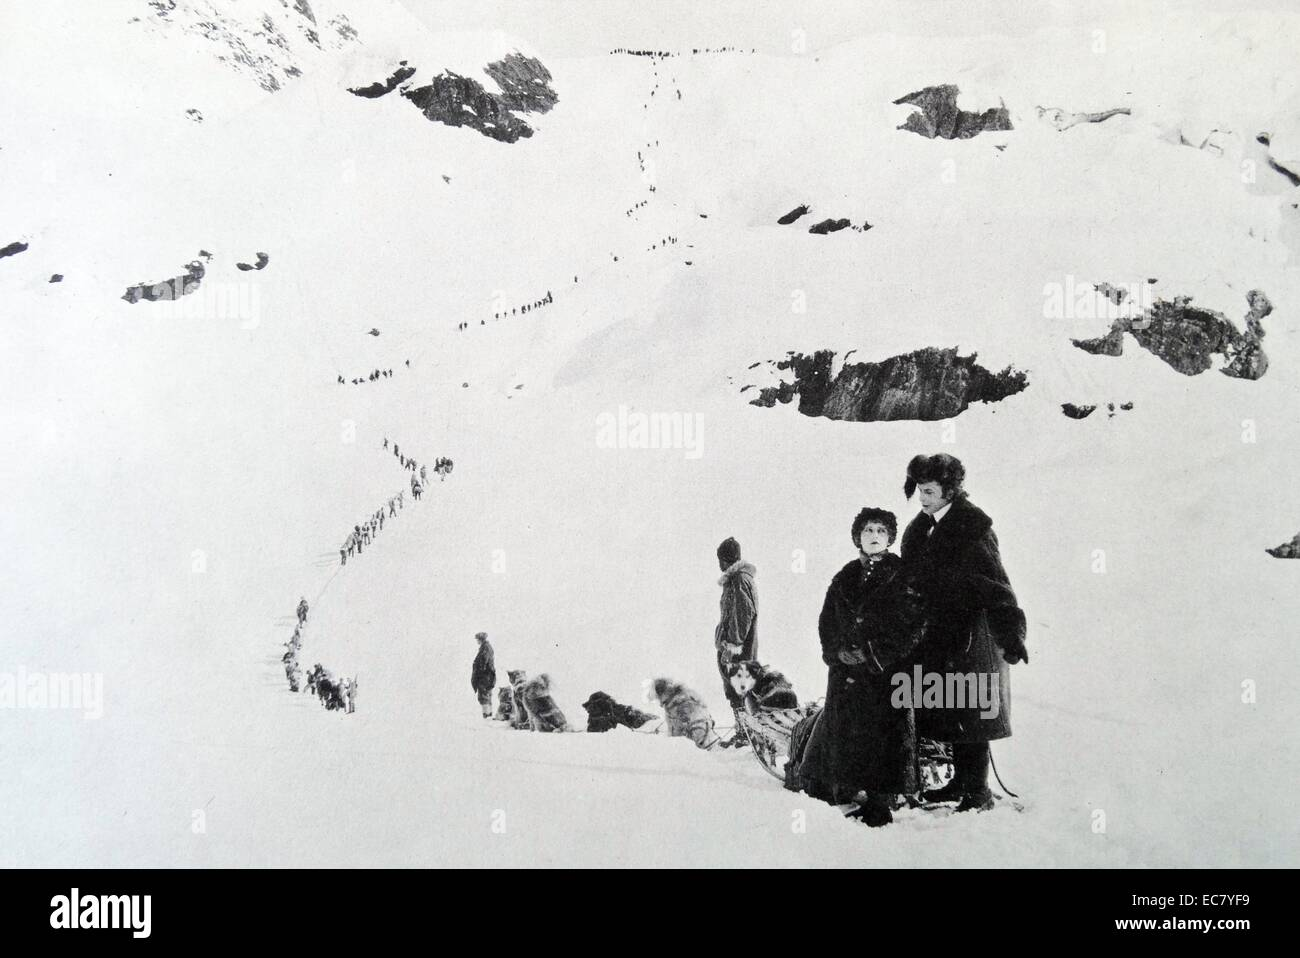 A location shot from Mount McKinley, 1924. - Stock Image